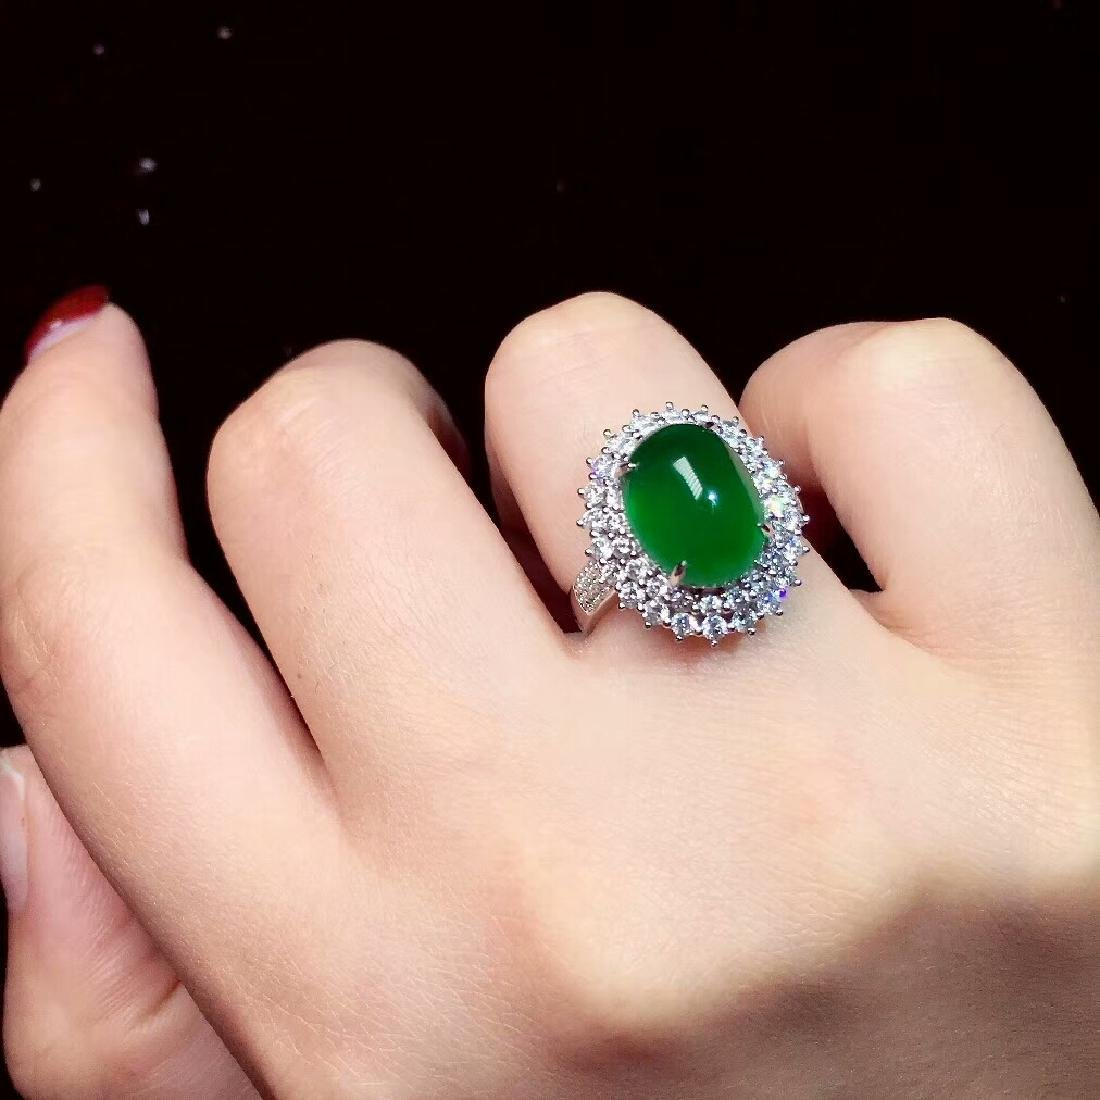 7.6ct Emerald Ring in 18kt White Gold - 6